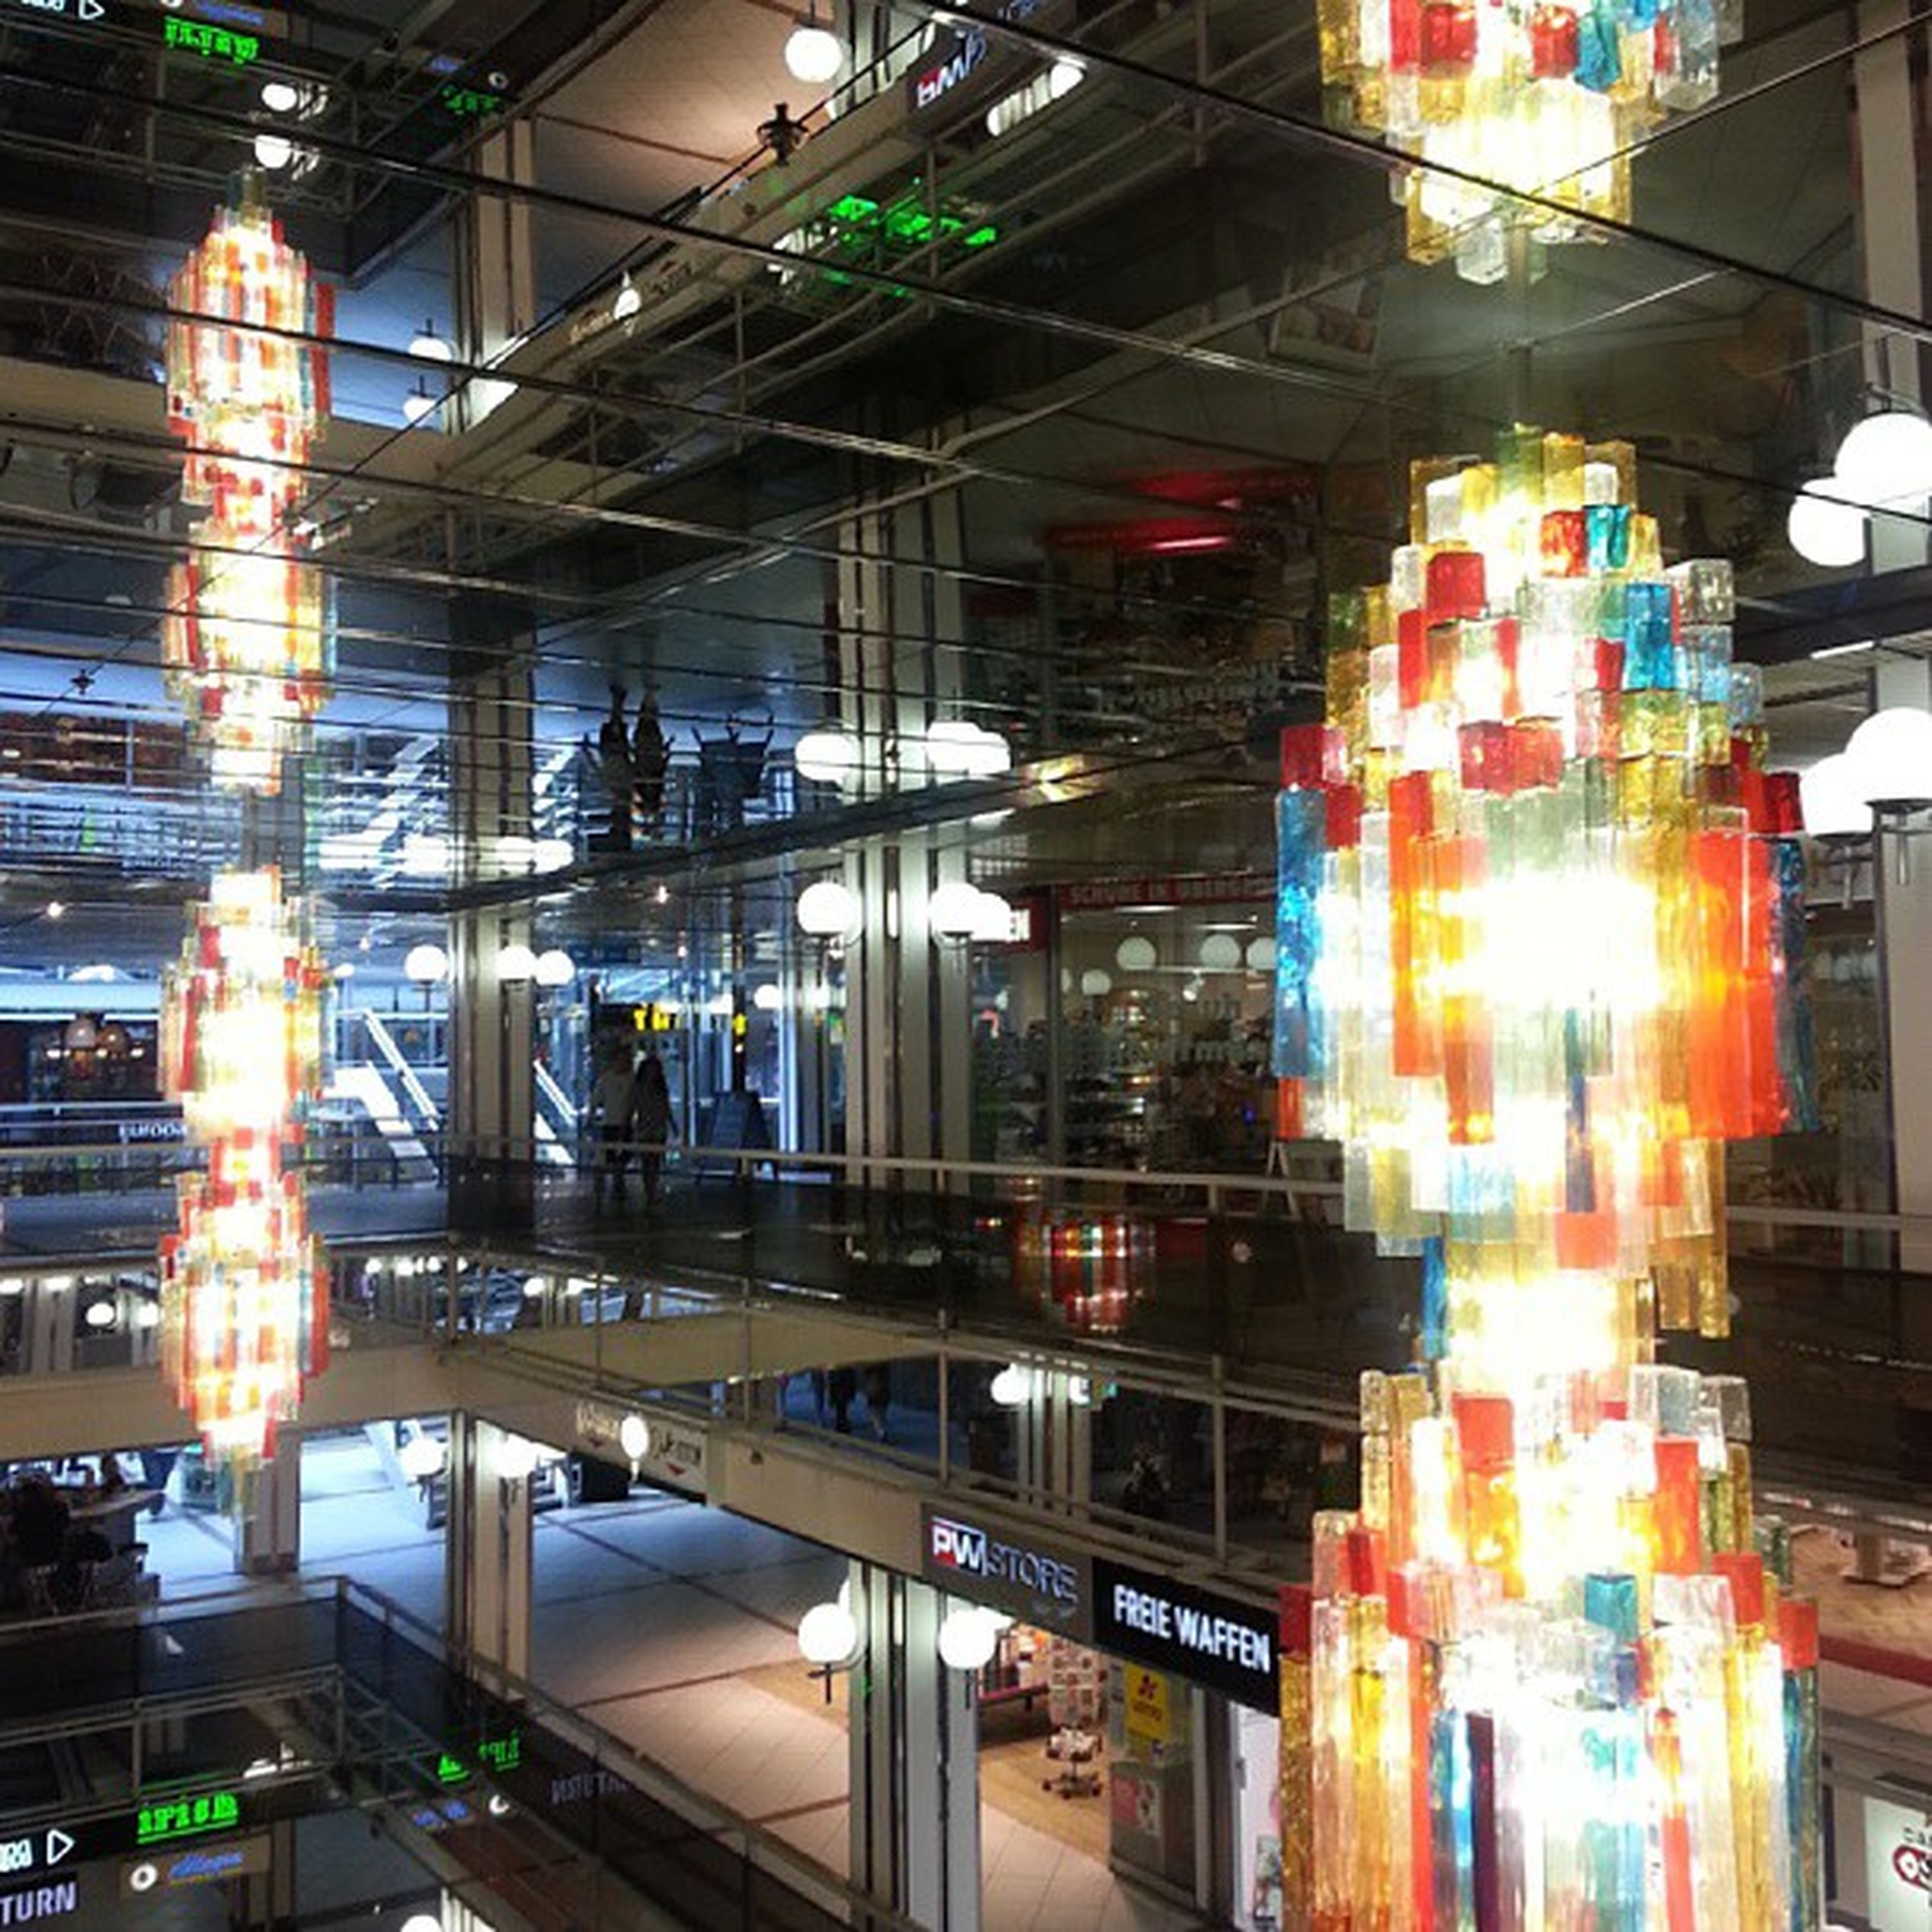 illuminated, architecture, built structure, night, lighting equipment, building exterior, city, reflection, indoors, modern, glass - material, store, incidental people, light - natural phenomenon, no people, city life, low angle view, glowing, multi colored, building